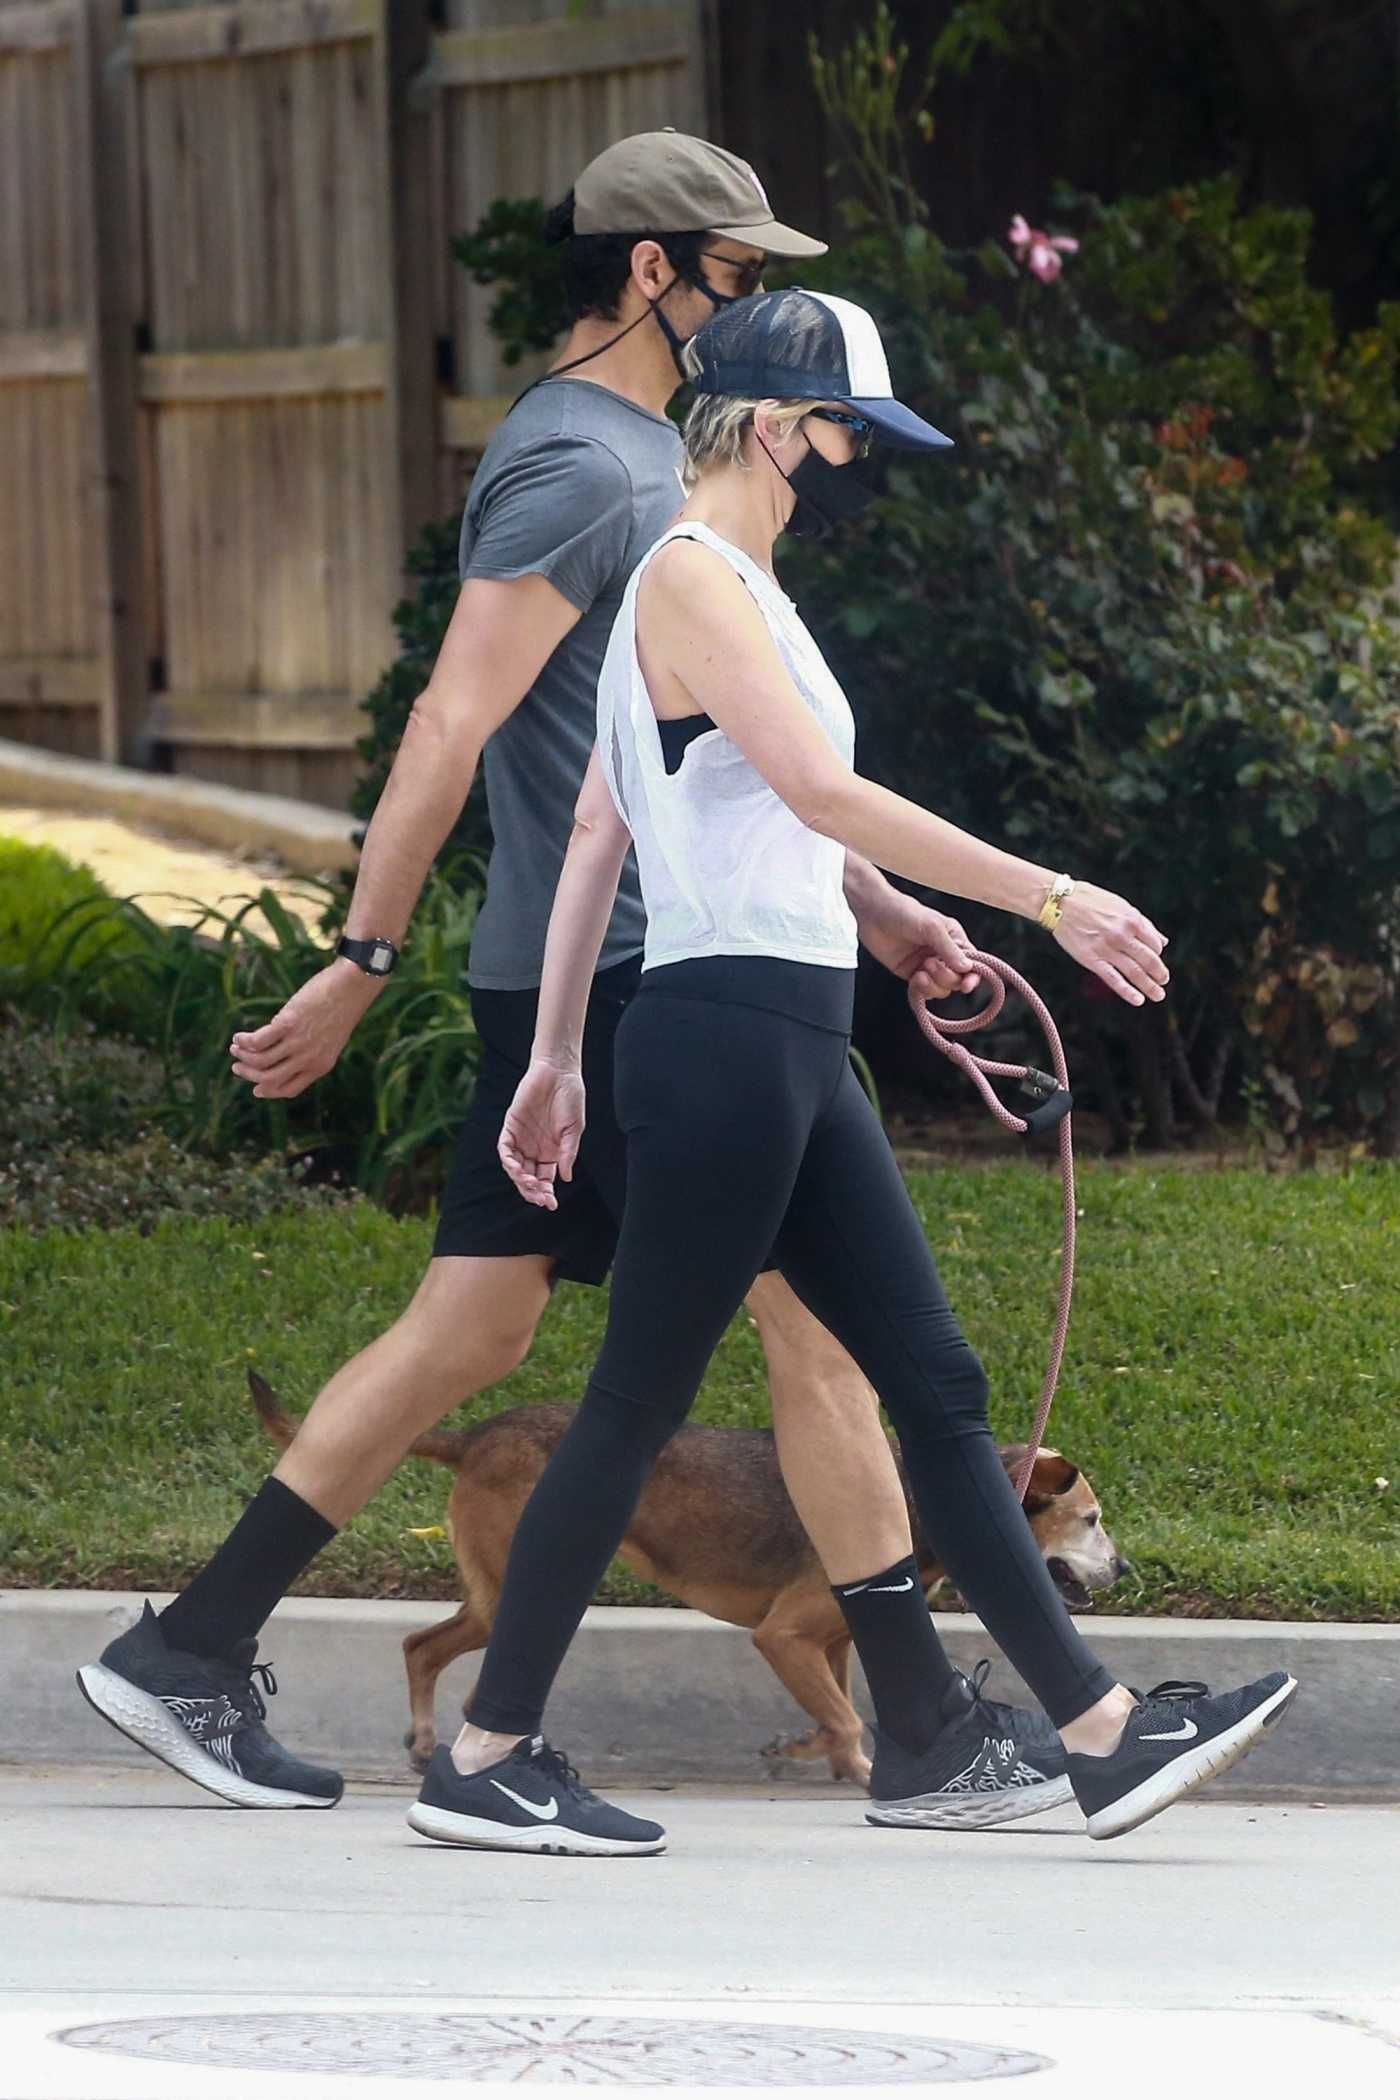 Kristen Wiig in a White Tank Top Goes for a Walk Out with  Avi Rothman in Los Angeles 05/11/2020